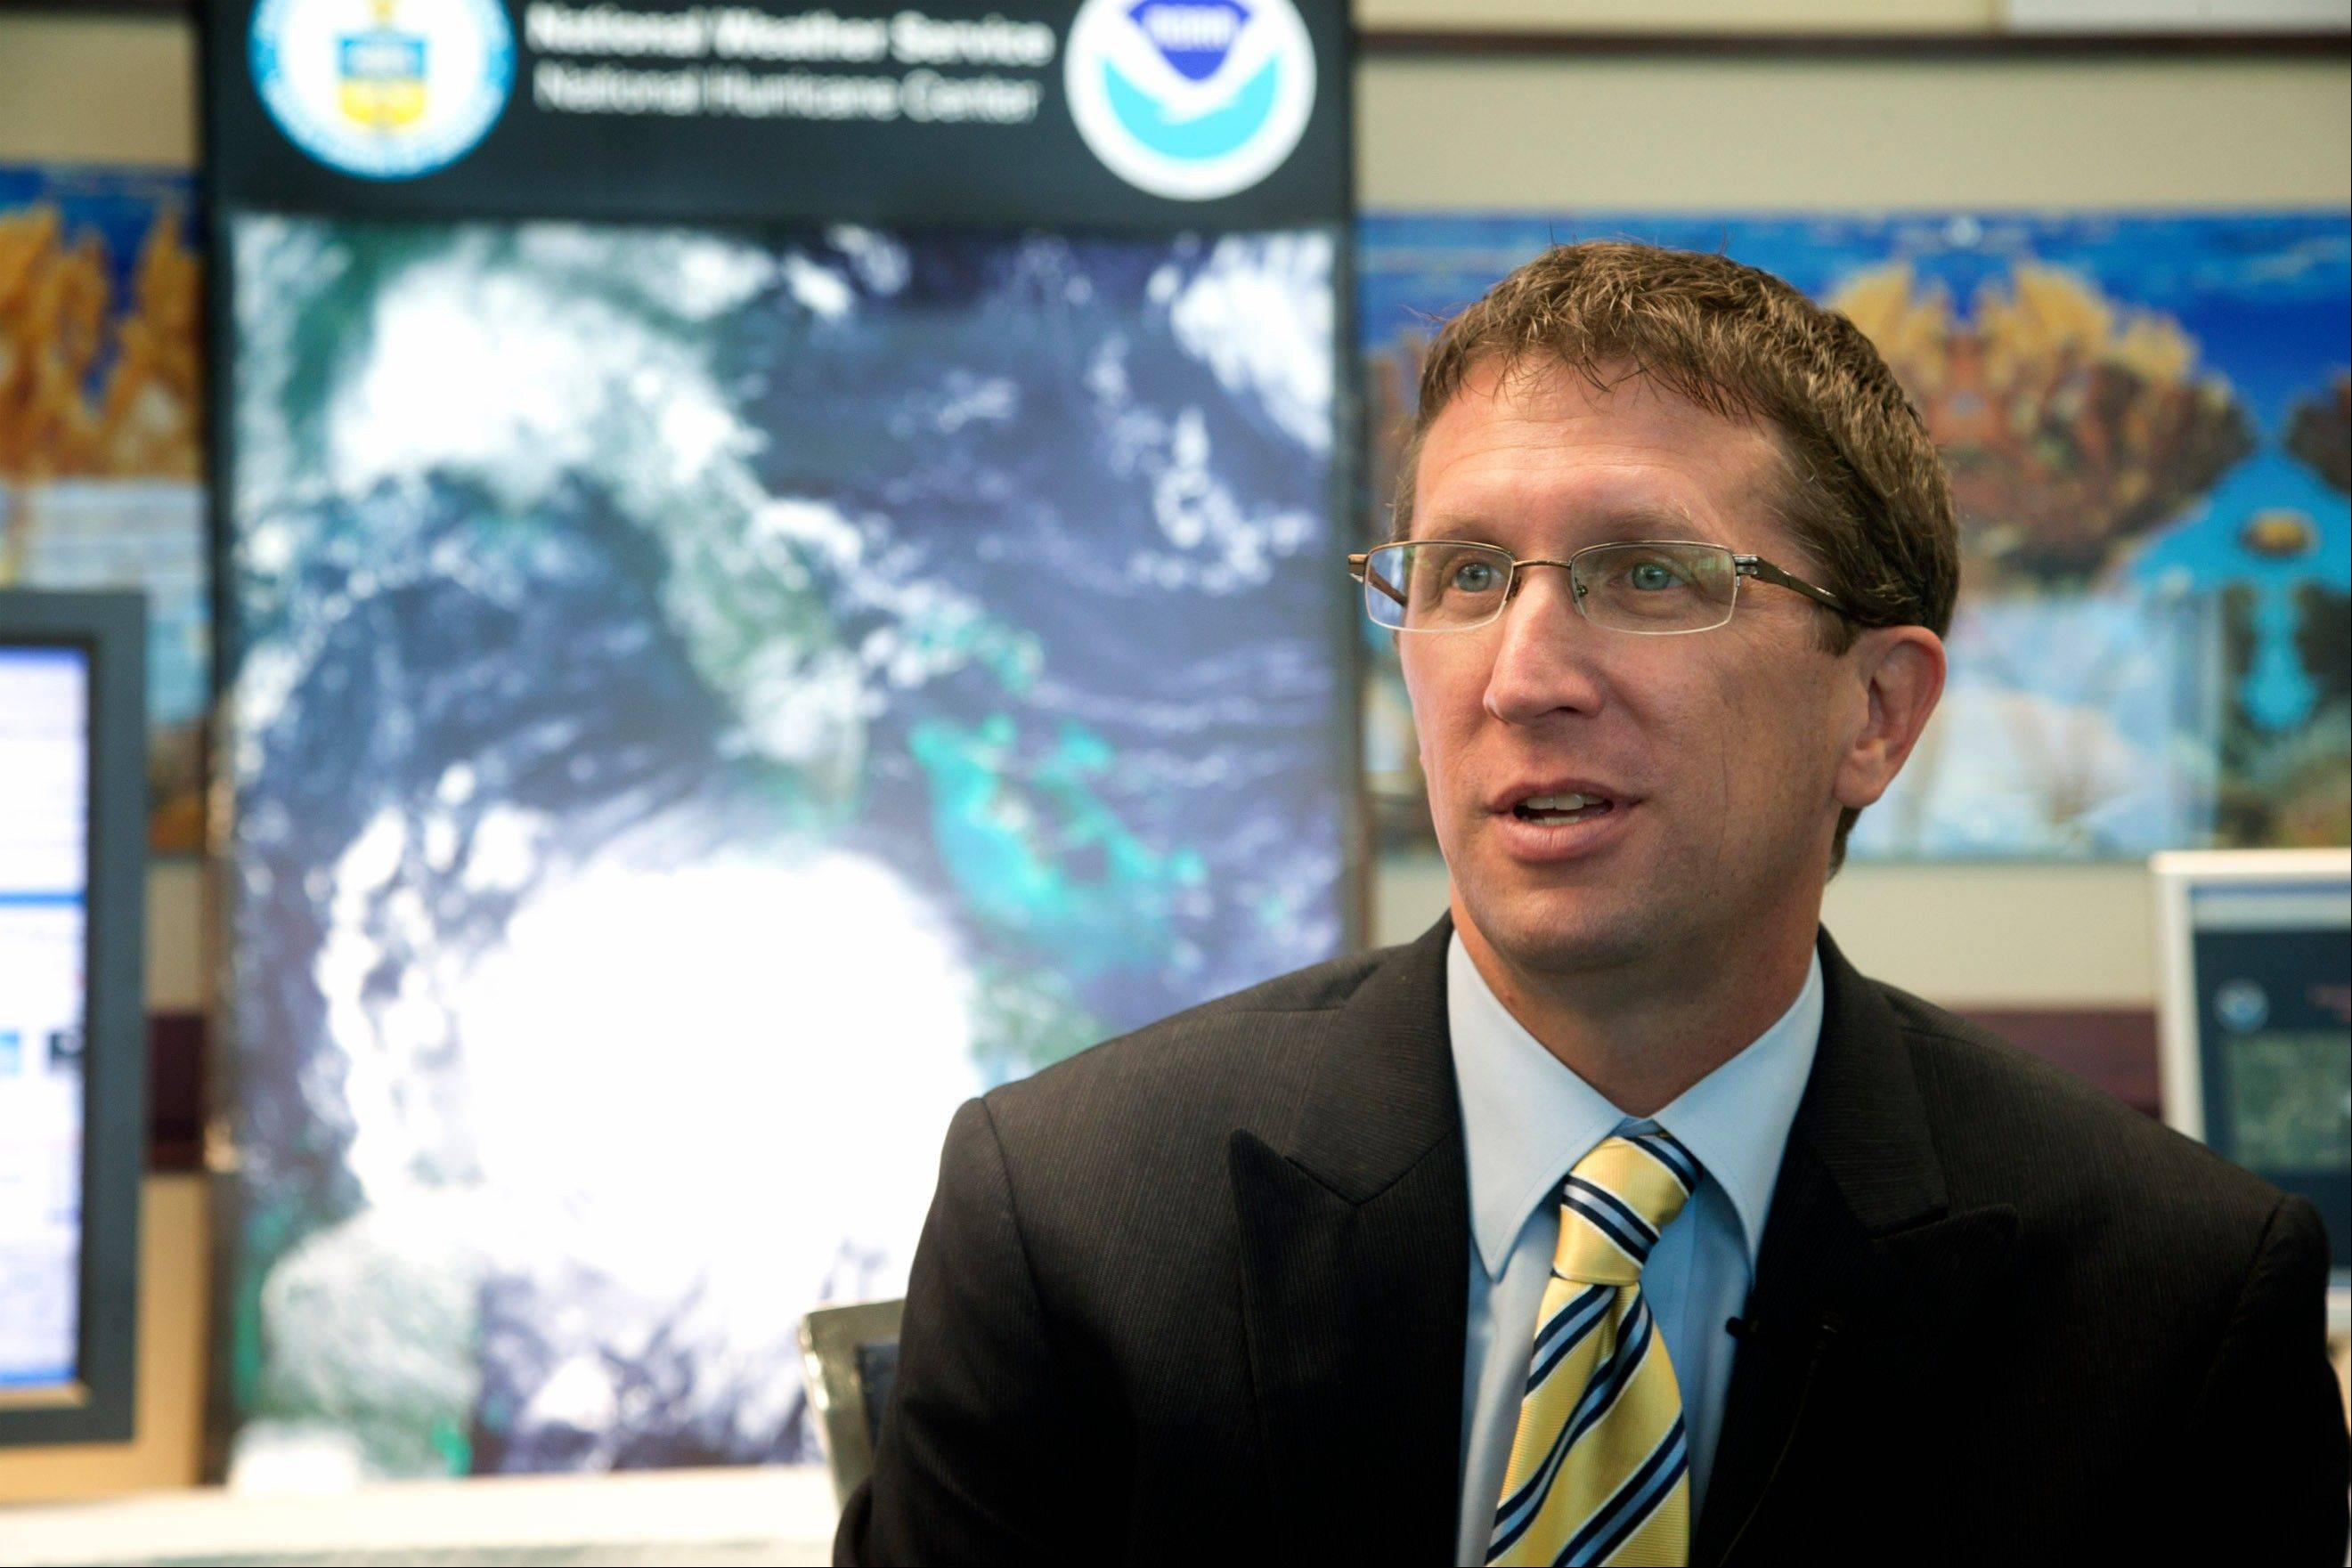 National Hurricane Center Director Rick Knabb talks in Fort Lauderdale, Fla., May 7. As the 2013 Atlantic Hurricasn season begins, forecasters are asking which computer model at predicting storms is best.